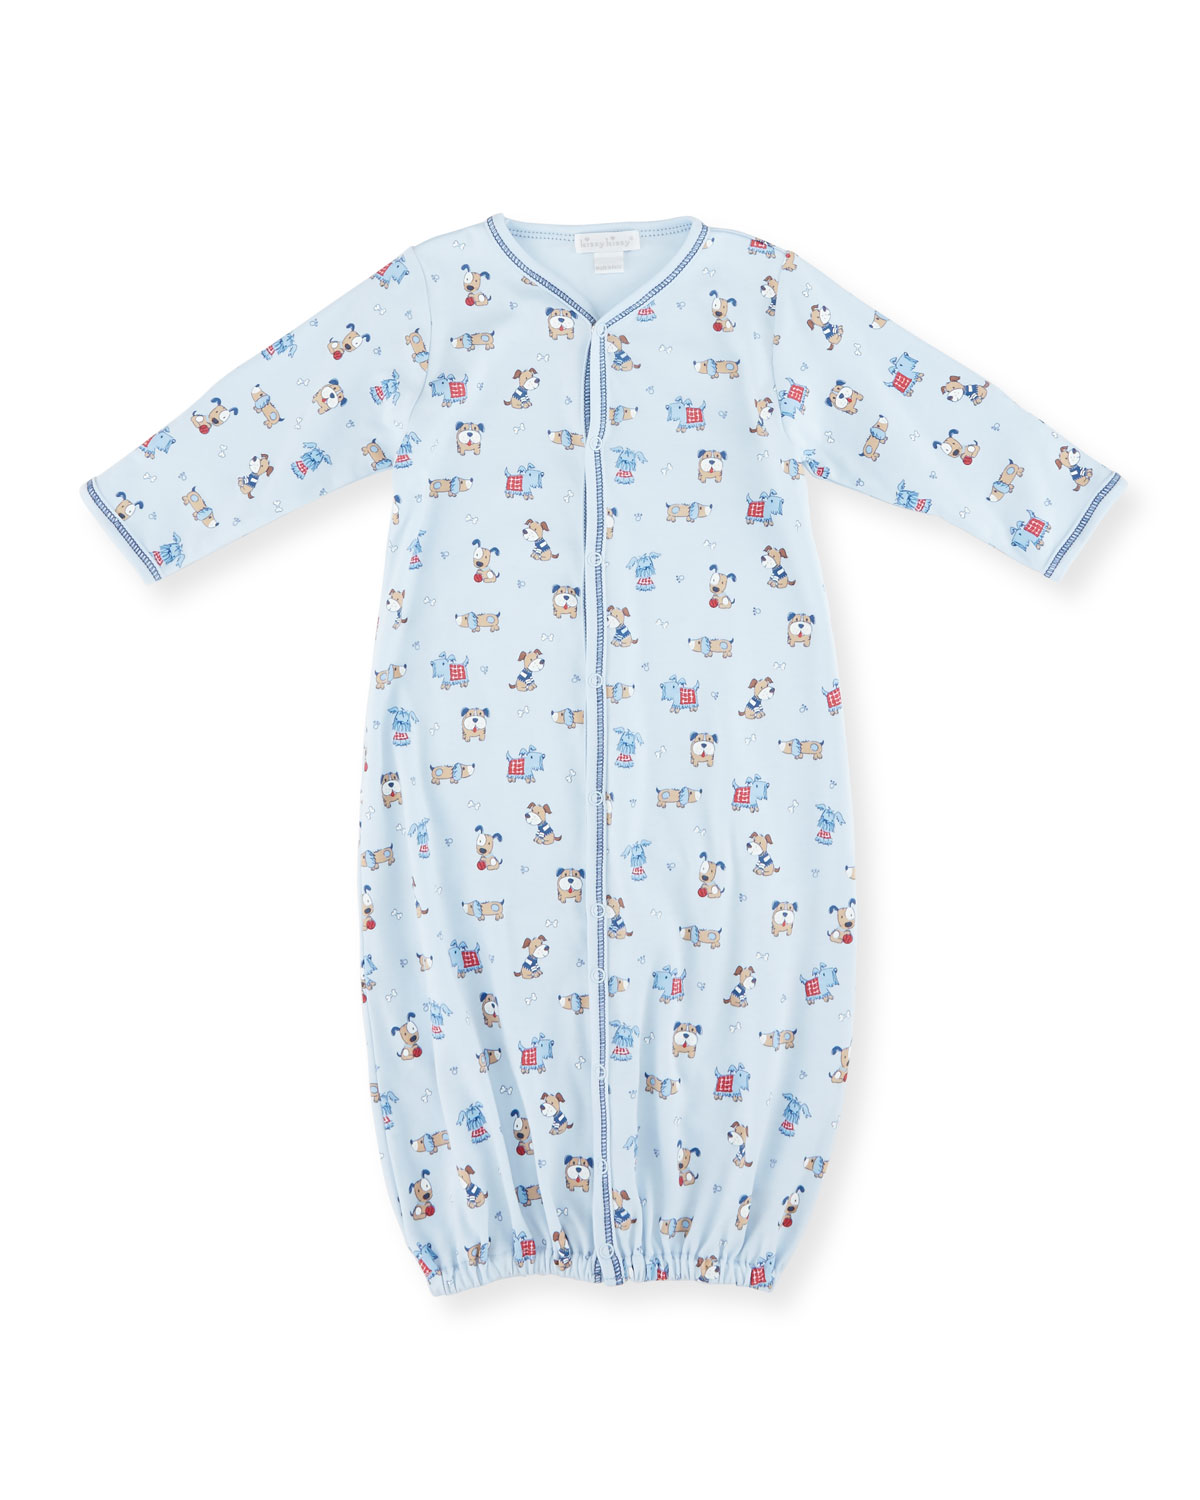 Sweater Weather Convertible Sleep Gown, Light Blue, Size Newborn-Small